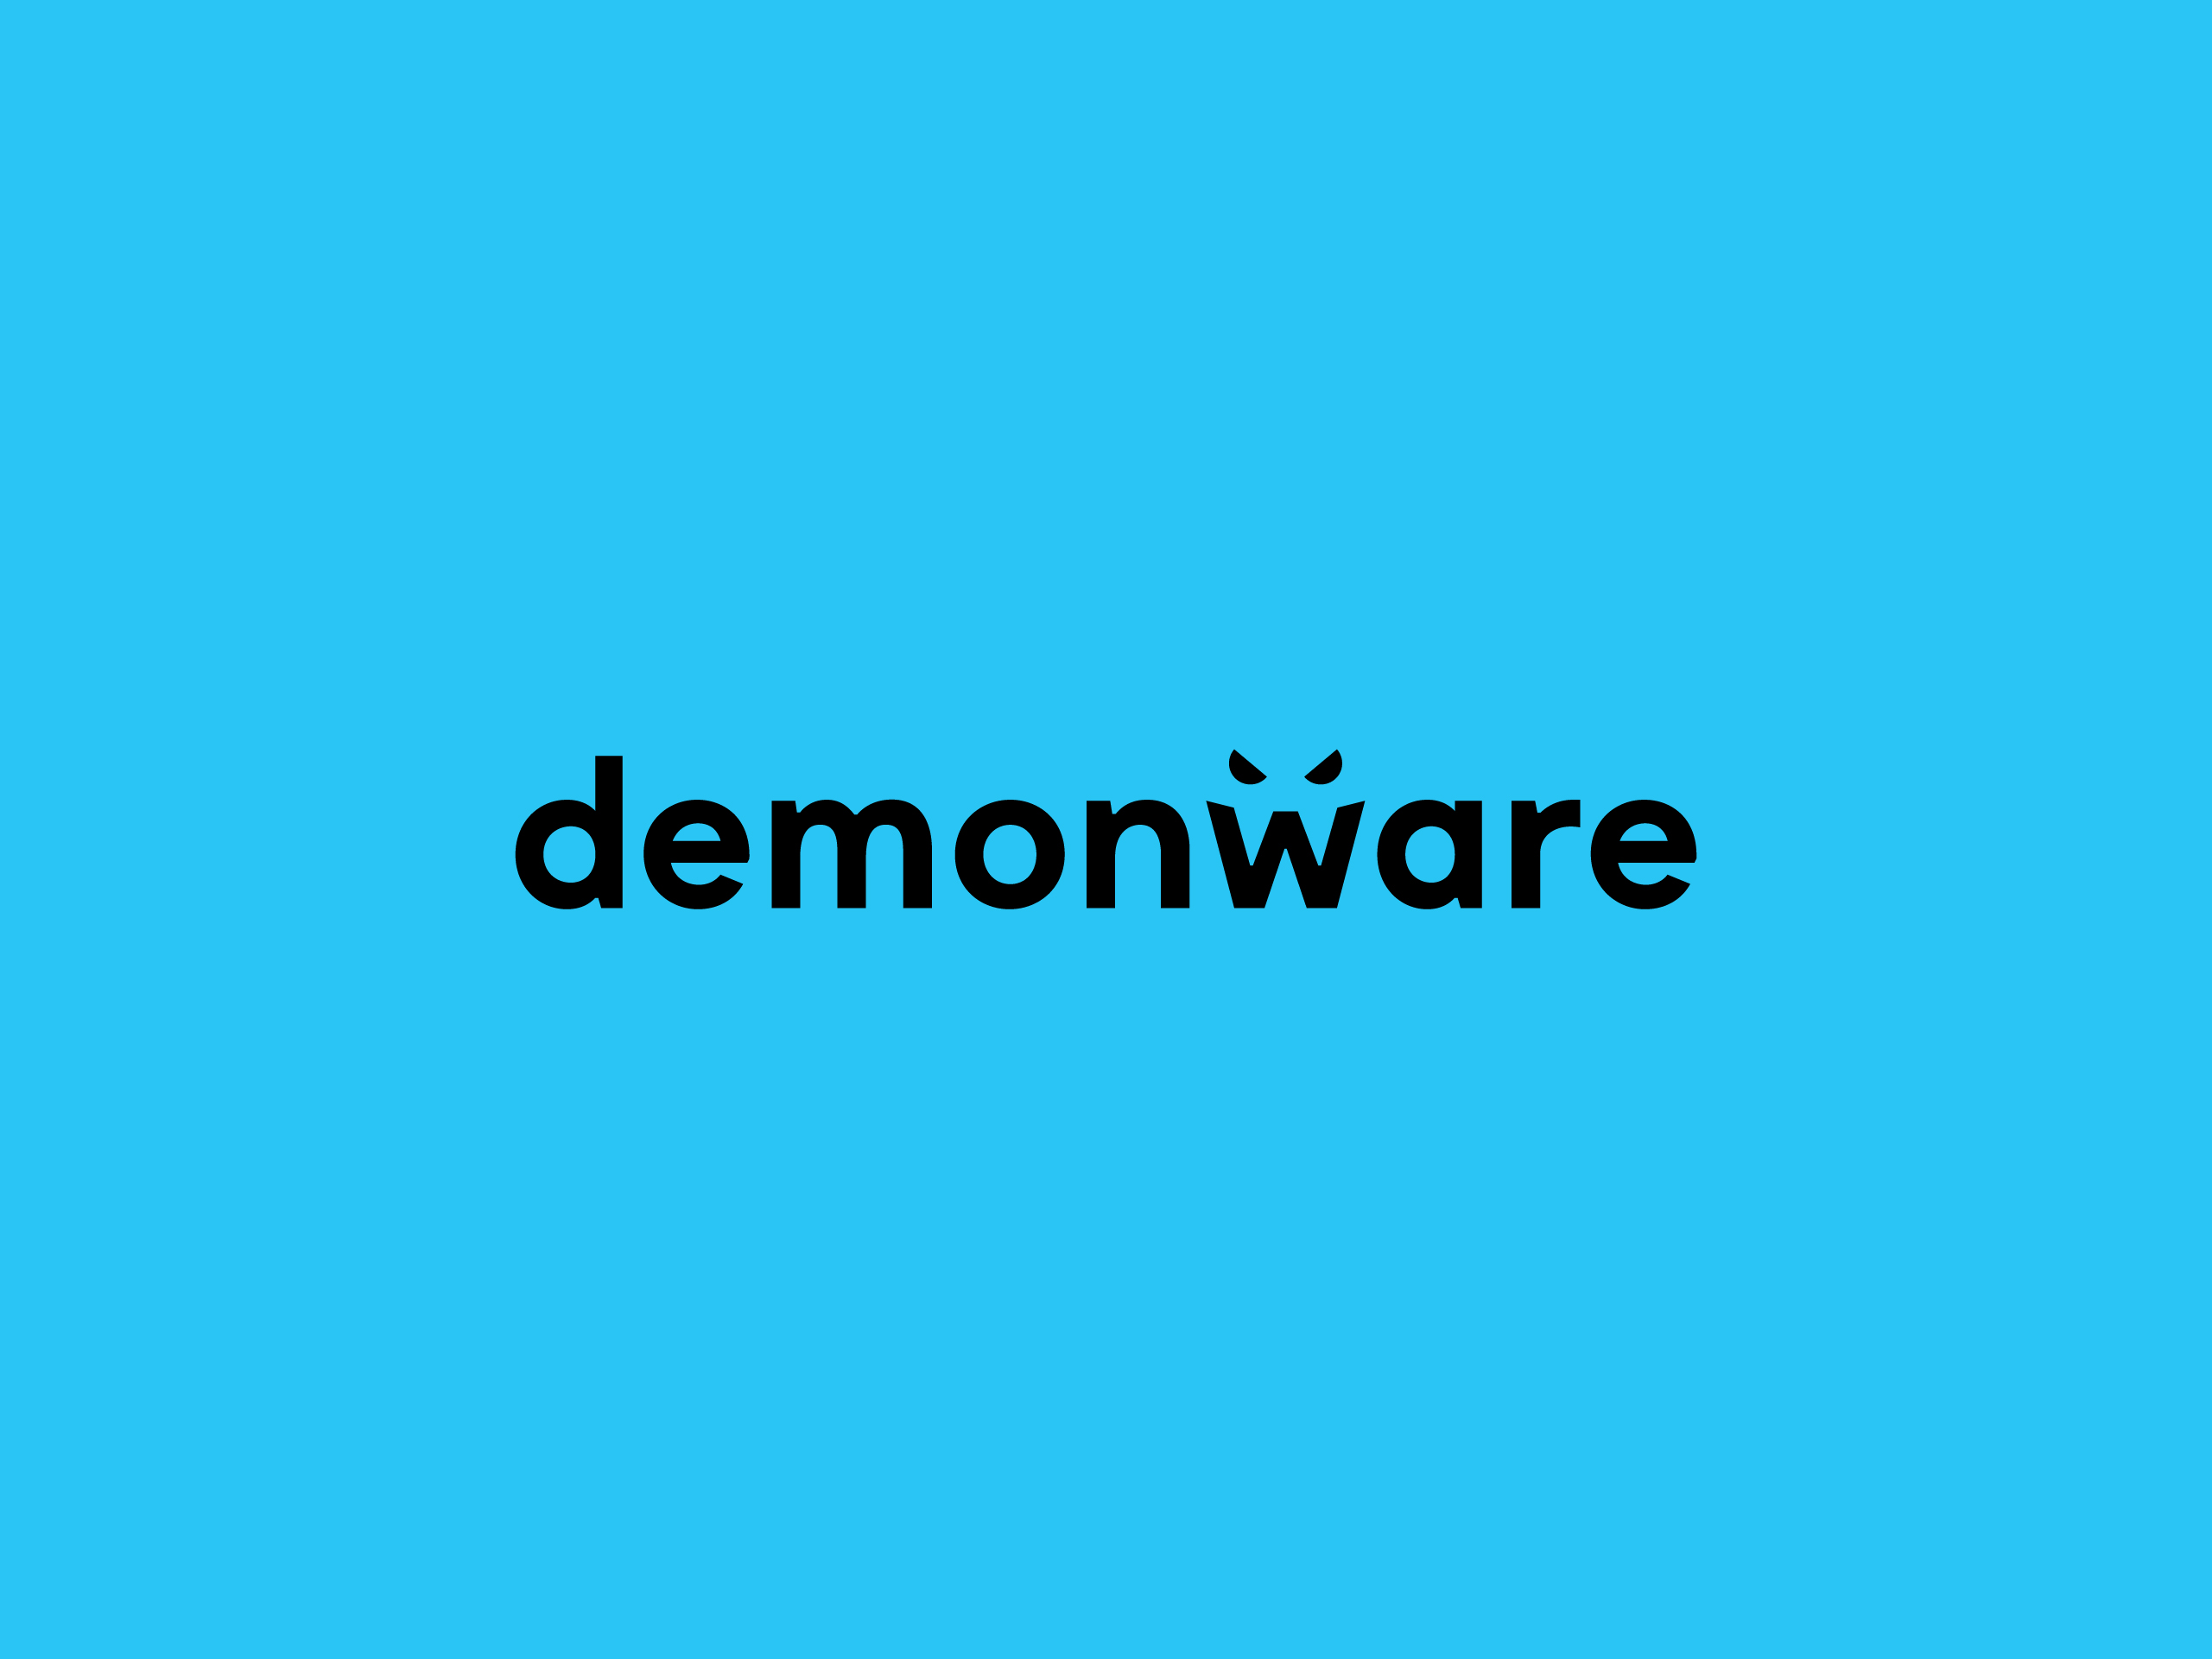 Cover image: Demonware